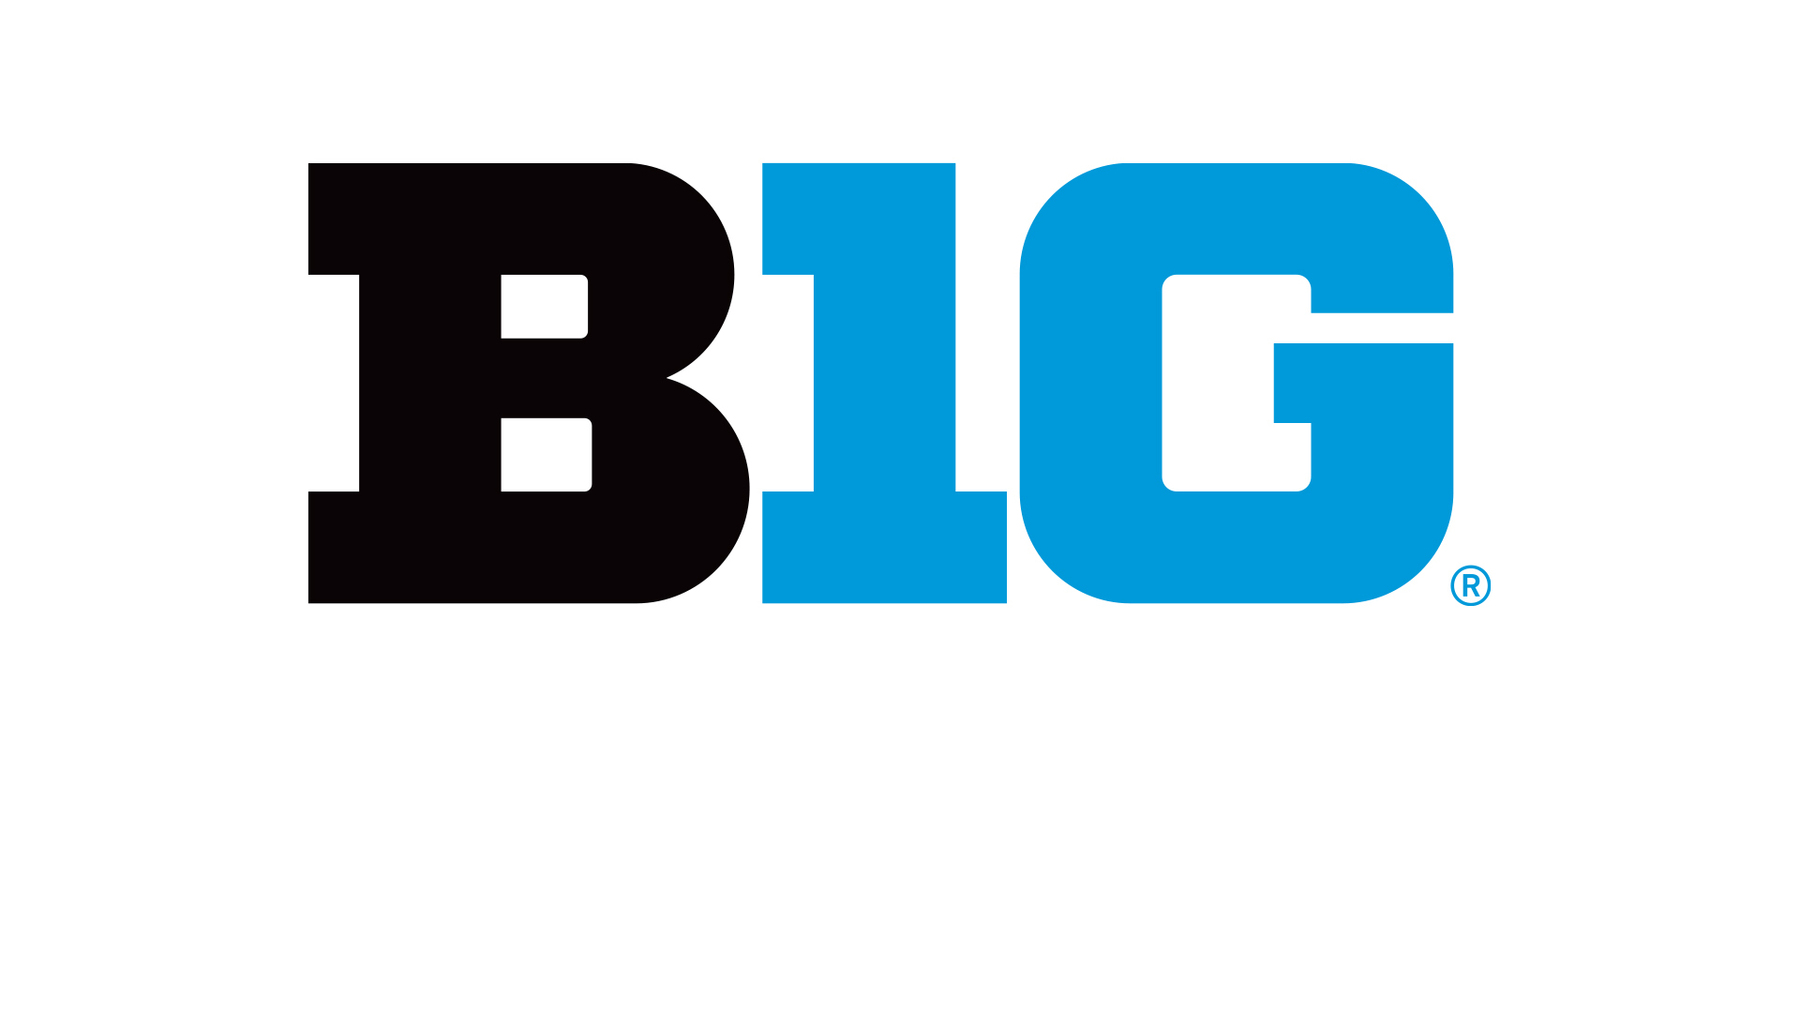 Big Ten's 'B1G' logo